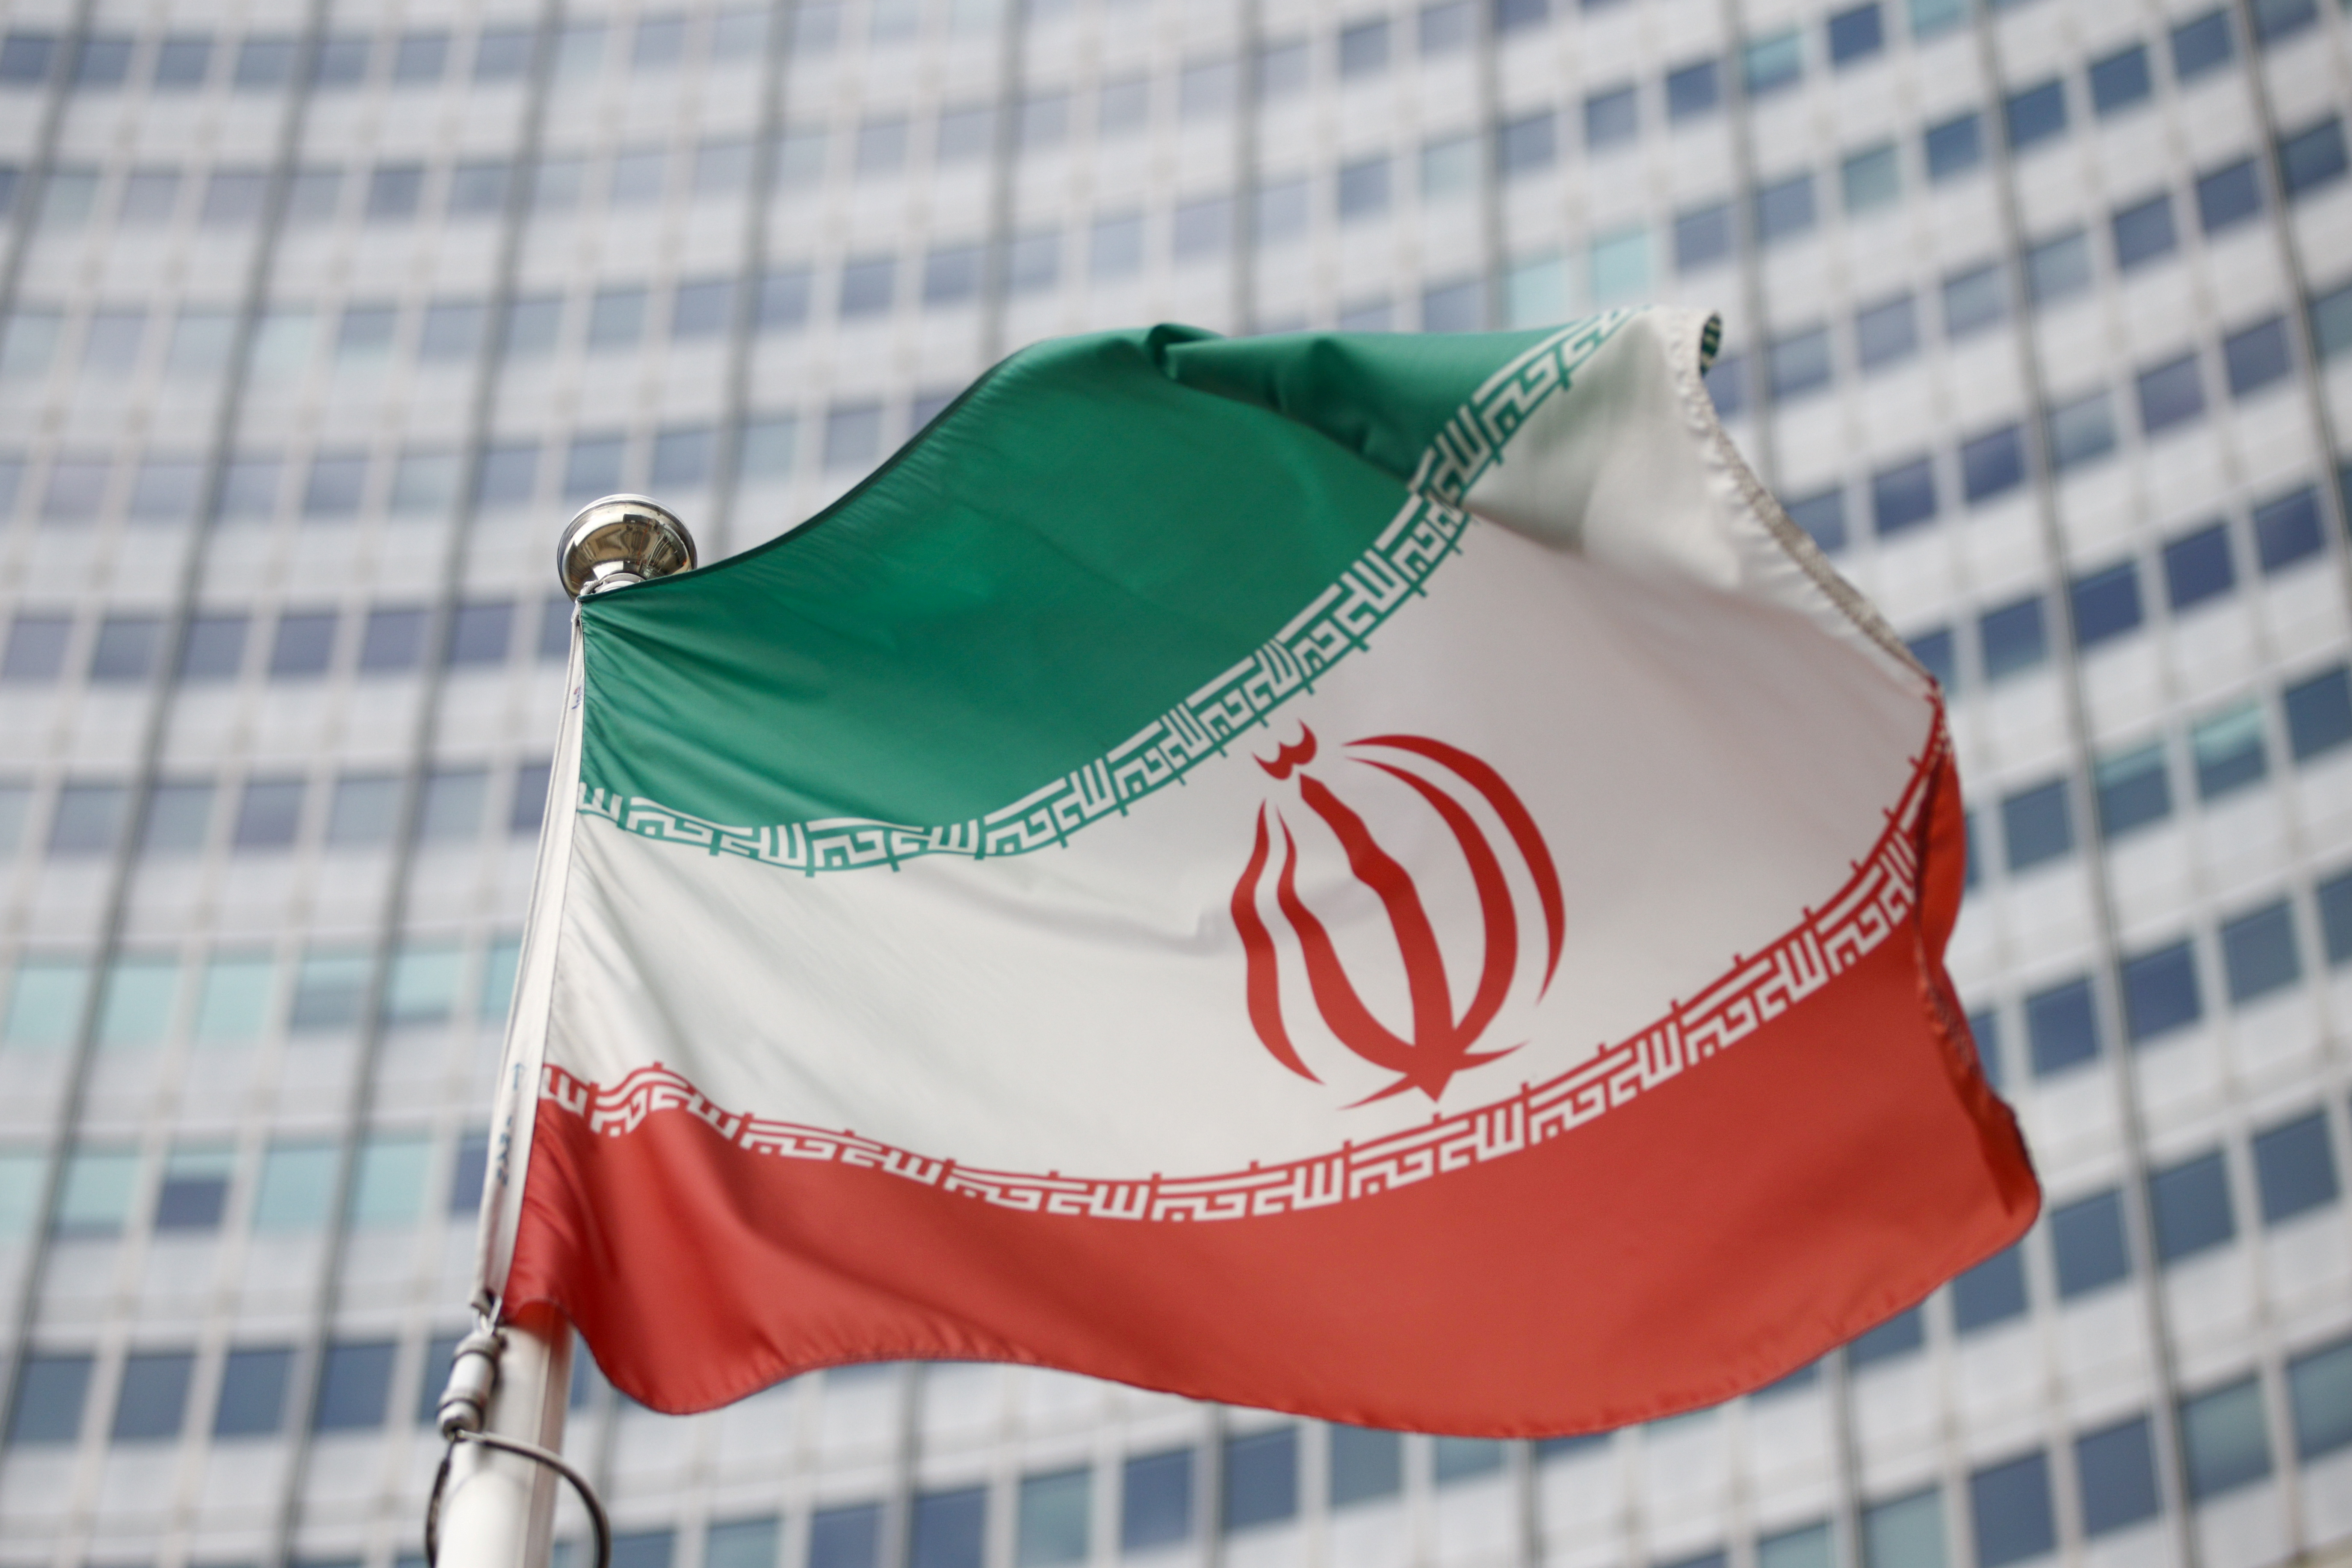 The Iranian flag waves in front of the International Atomic Energy Agency (IAEA) headquarters, before the beginning of a board of governors meeting, amid the coronavirus disease (COVID-19) outbreak in Vienna, Austria, March 1, 2021. REUTERS/Lisi Niesner